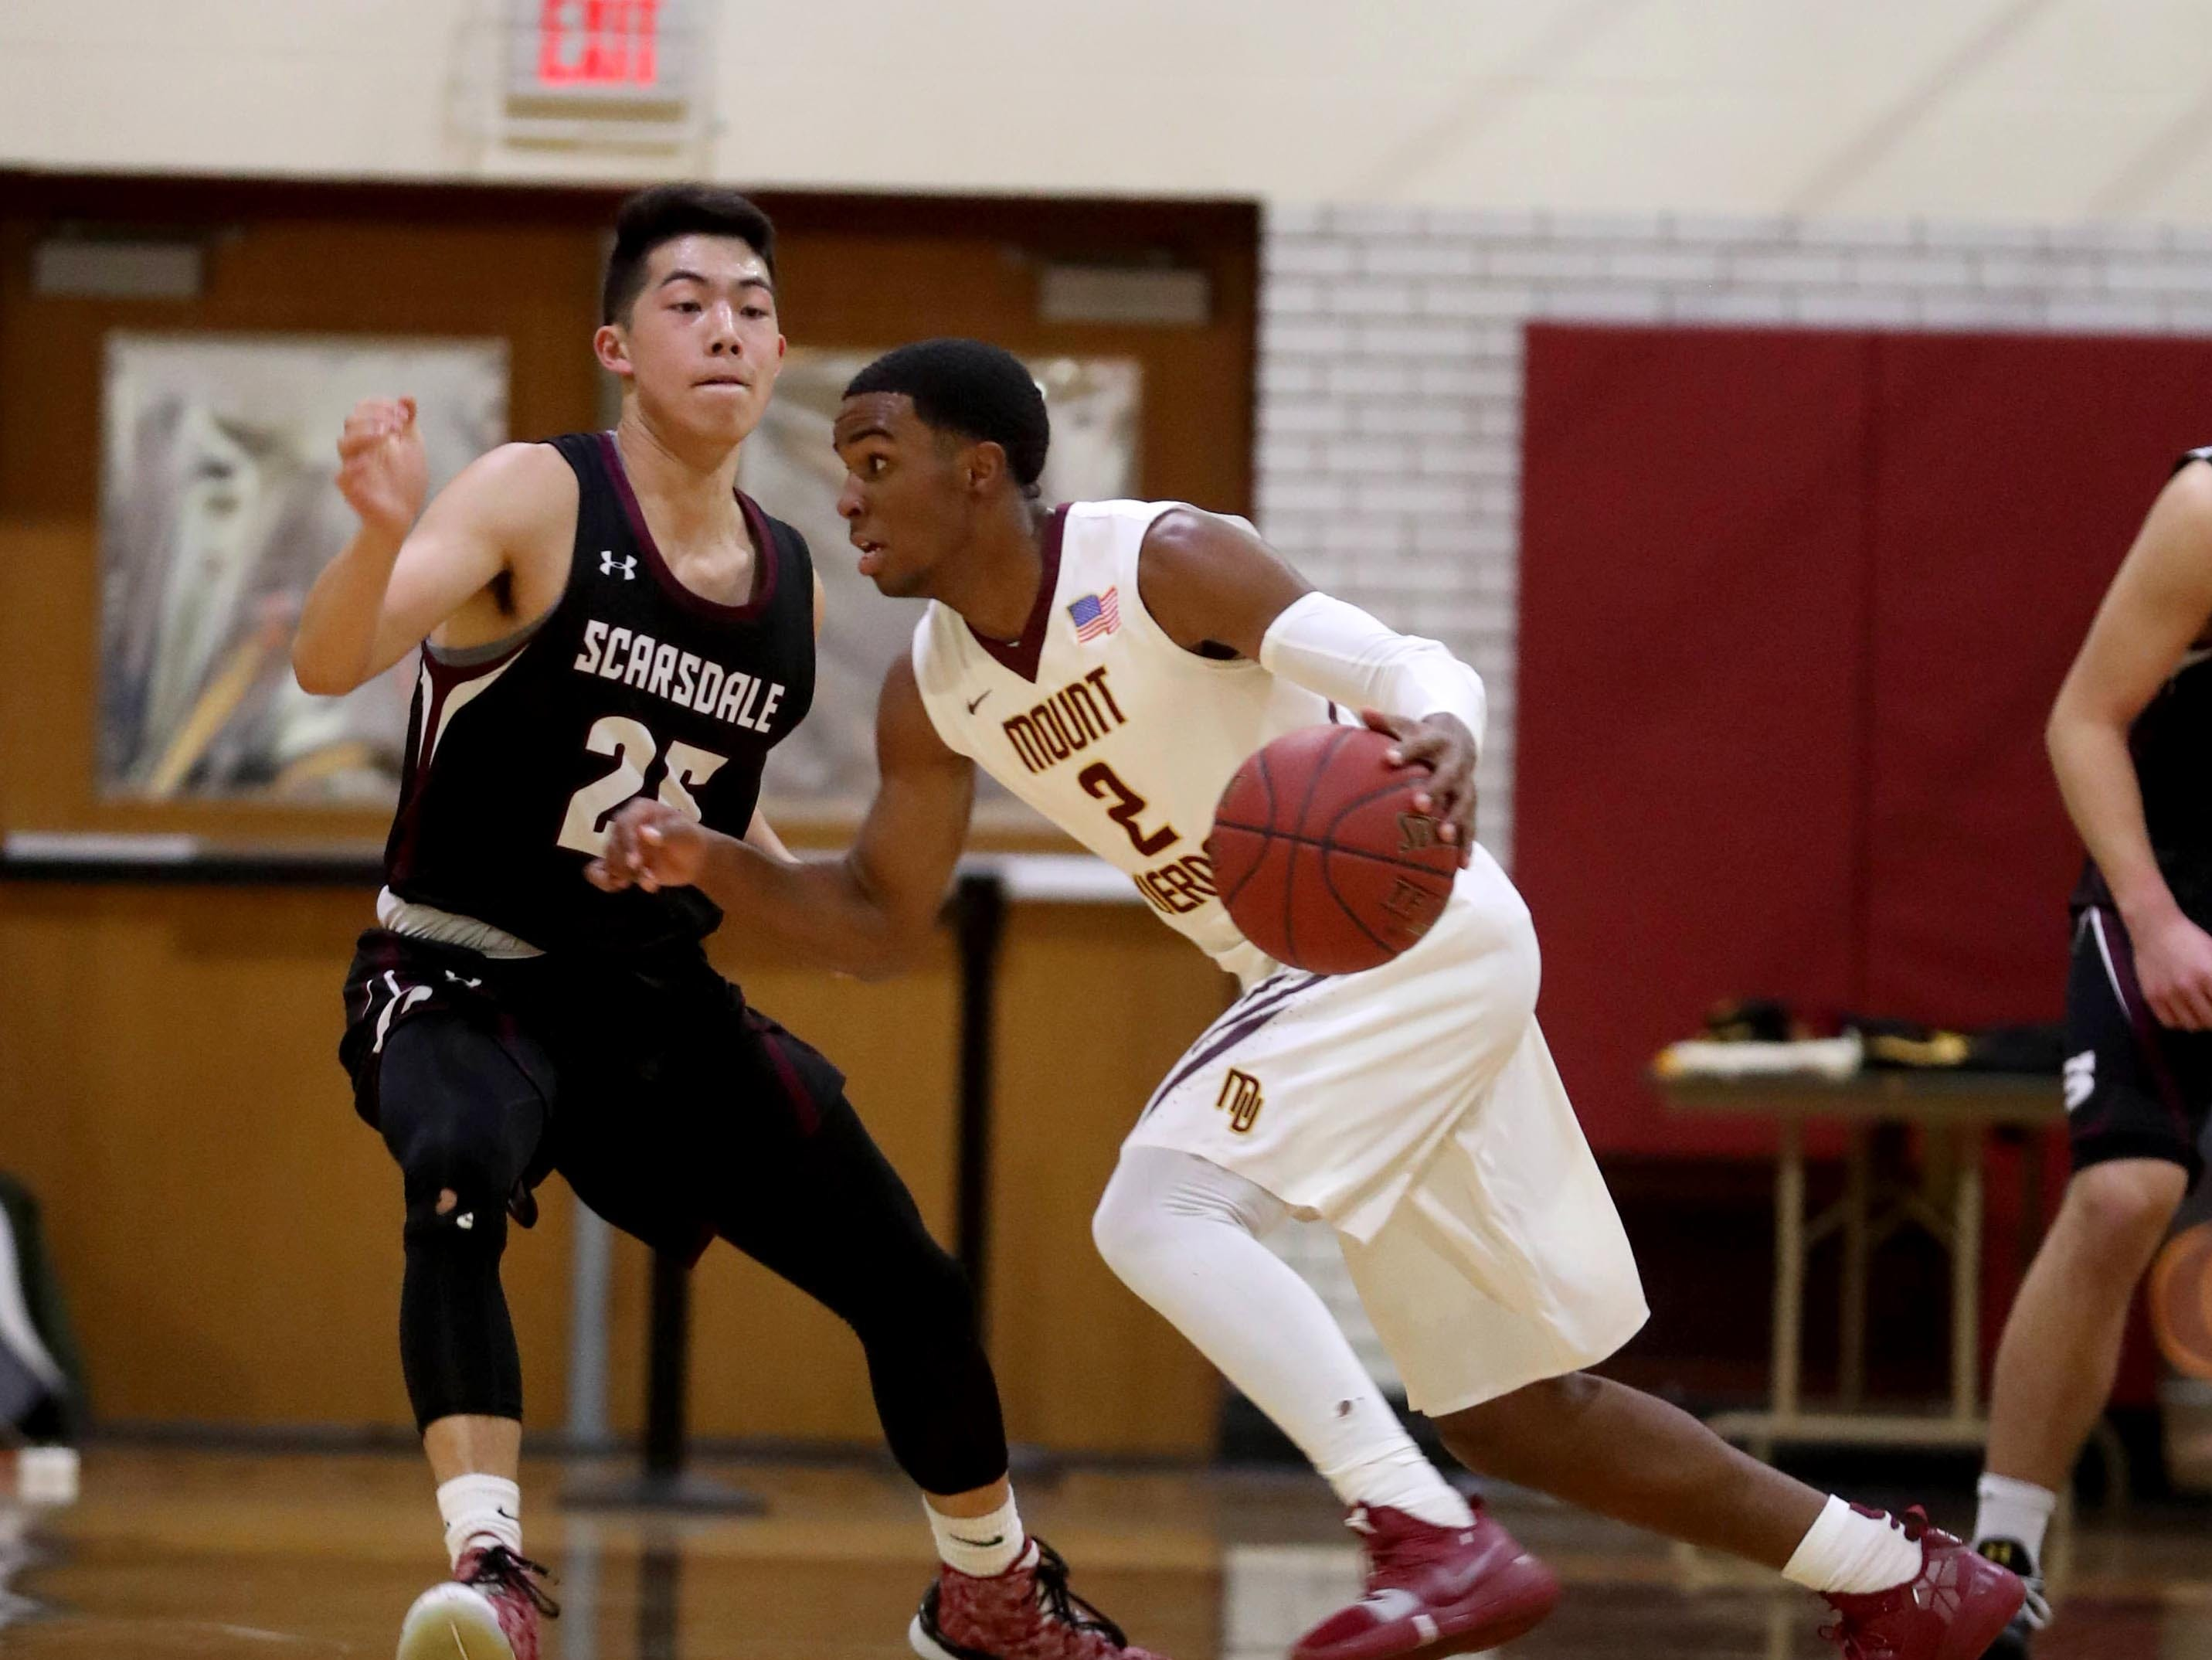 Joel Cooper of Mount Vernon drives on Evan Huo of Scarsdale during a varsity basketball game at Mount Vernon High School Jan. 9, 2019. Mount Vernon defeated Scarsdale 70-54.